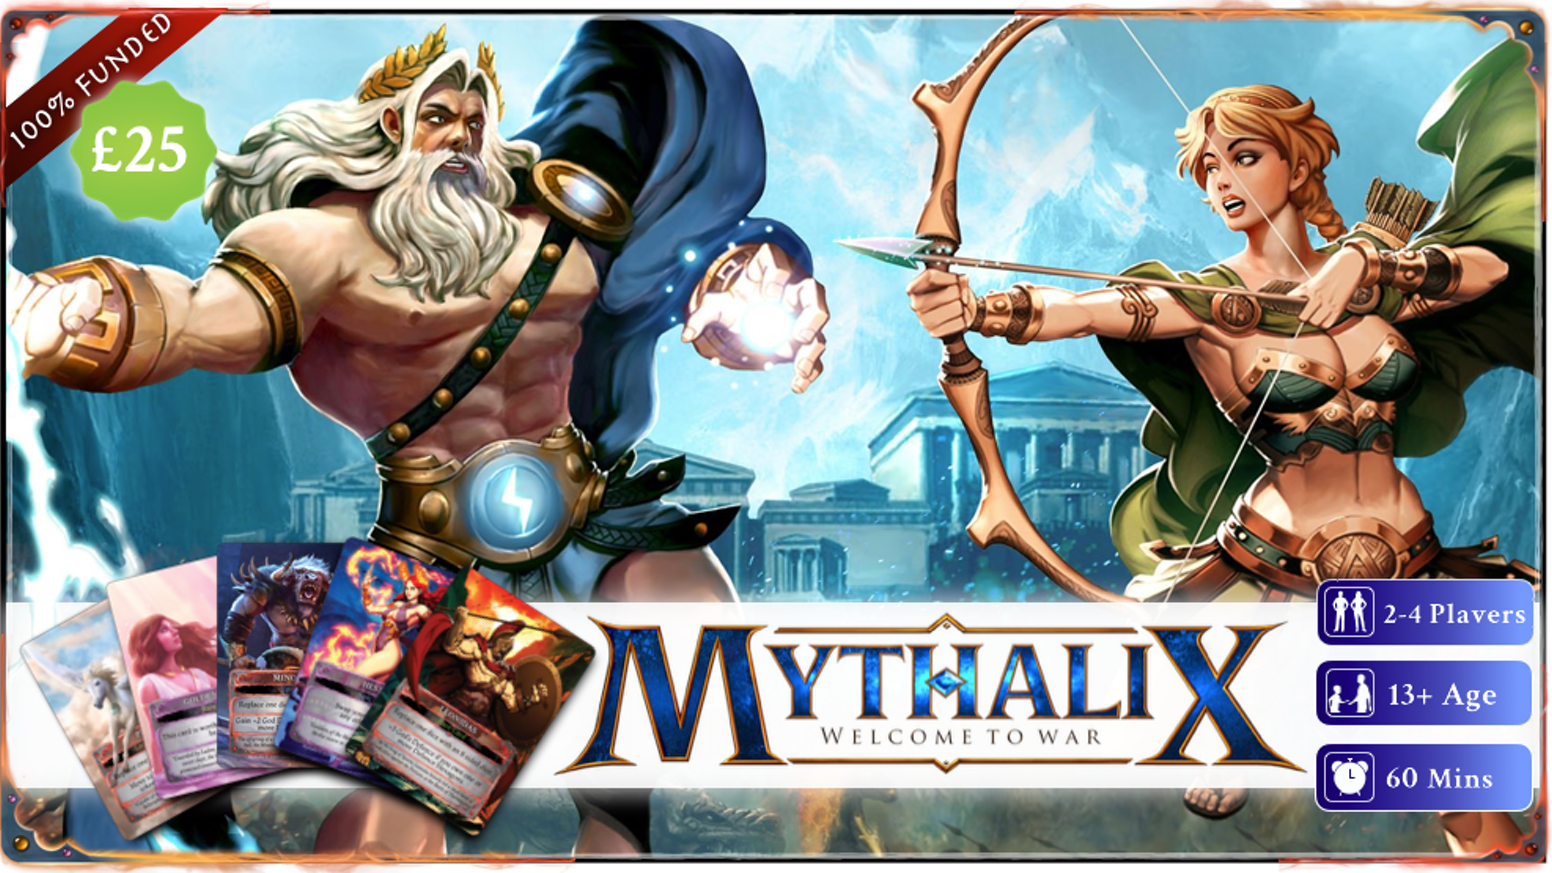 Gods and Titans clash in a new world. Build your deck, control areas & battle opponents in this light strategy board game.If you missed the campaign you can join our late Pledge Manager by clicking the button below.